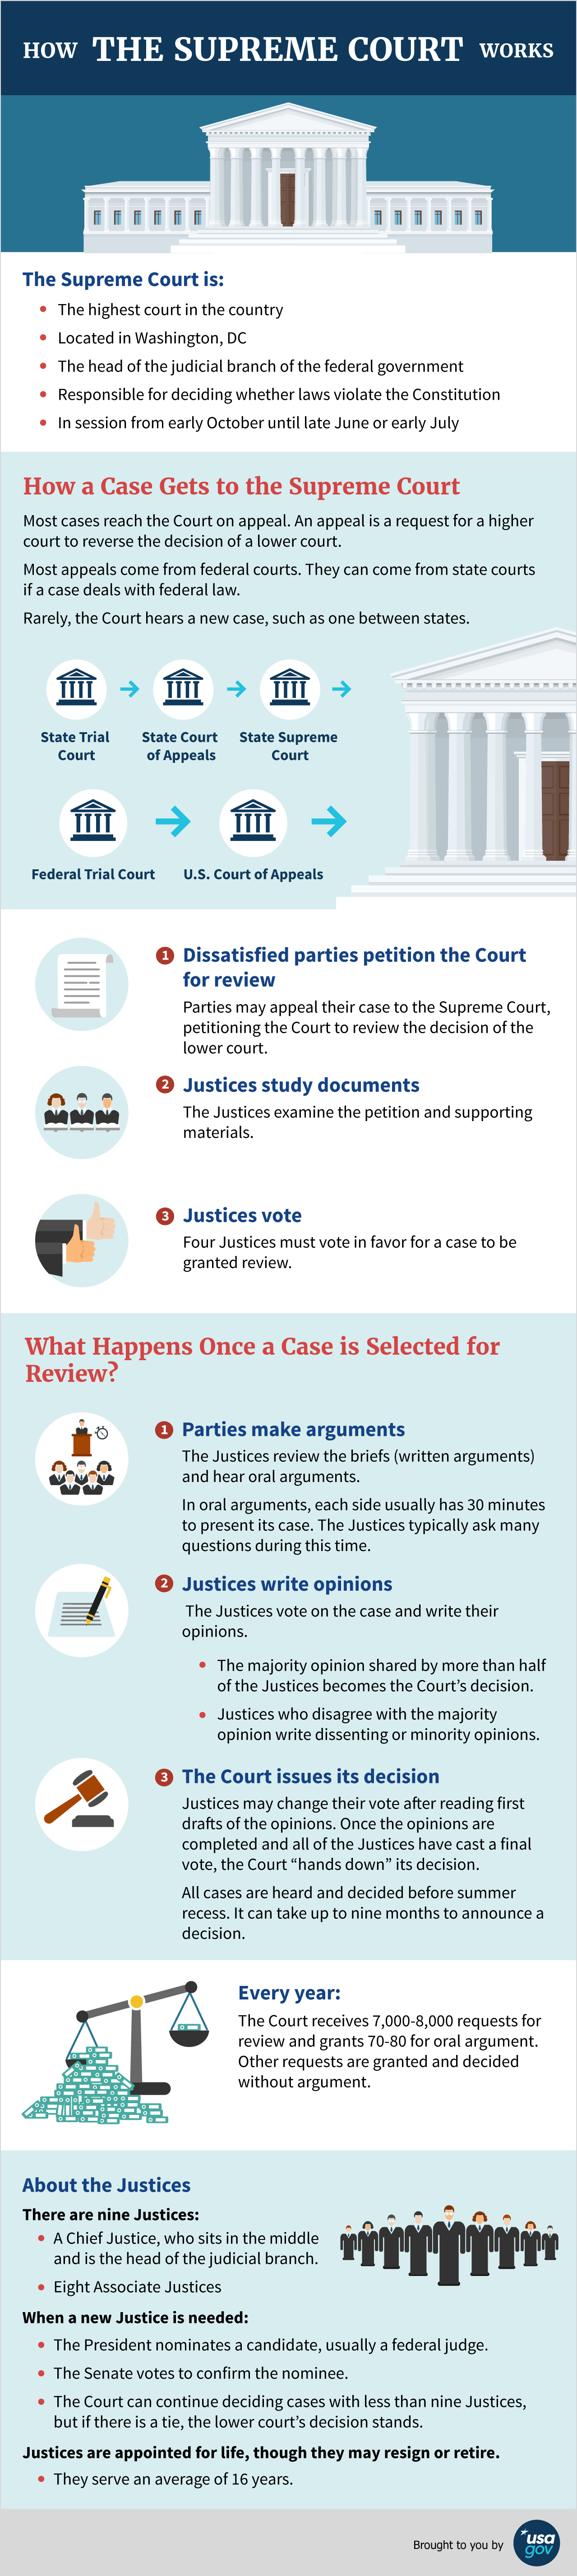 Infographic of how the supreme court works